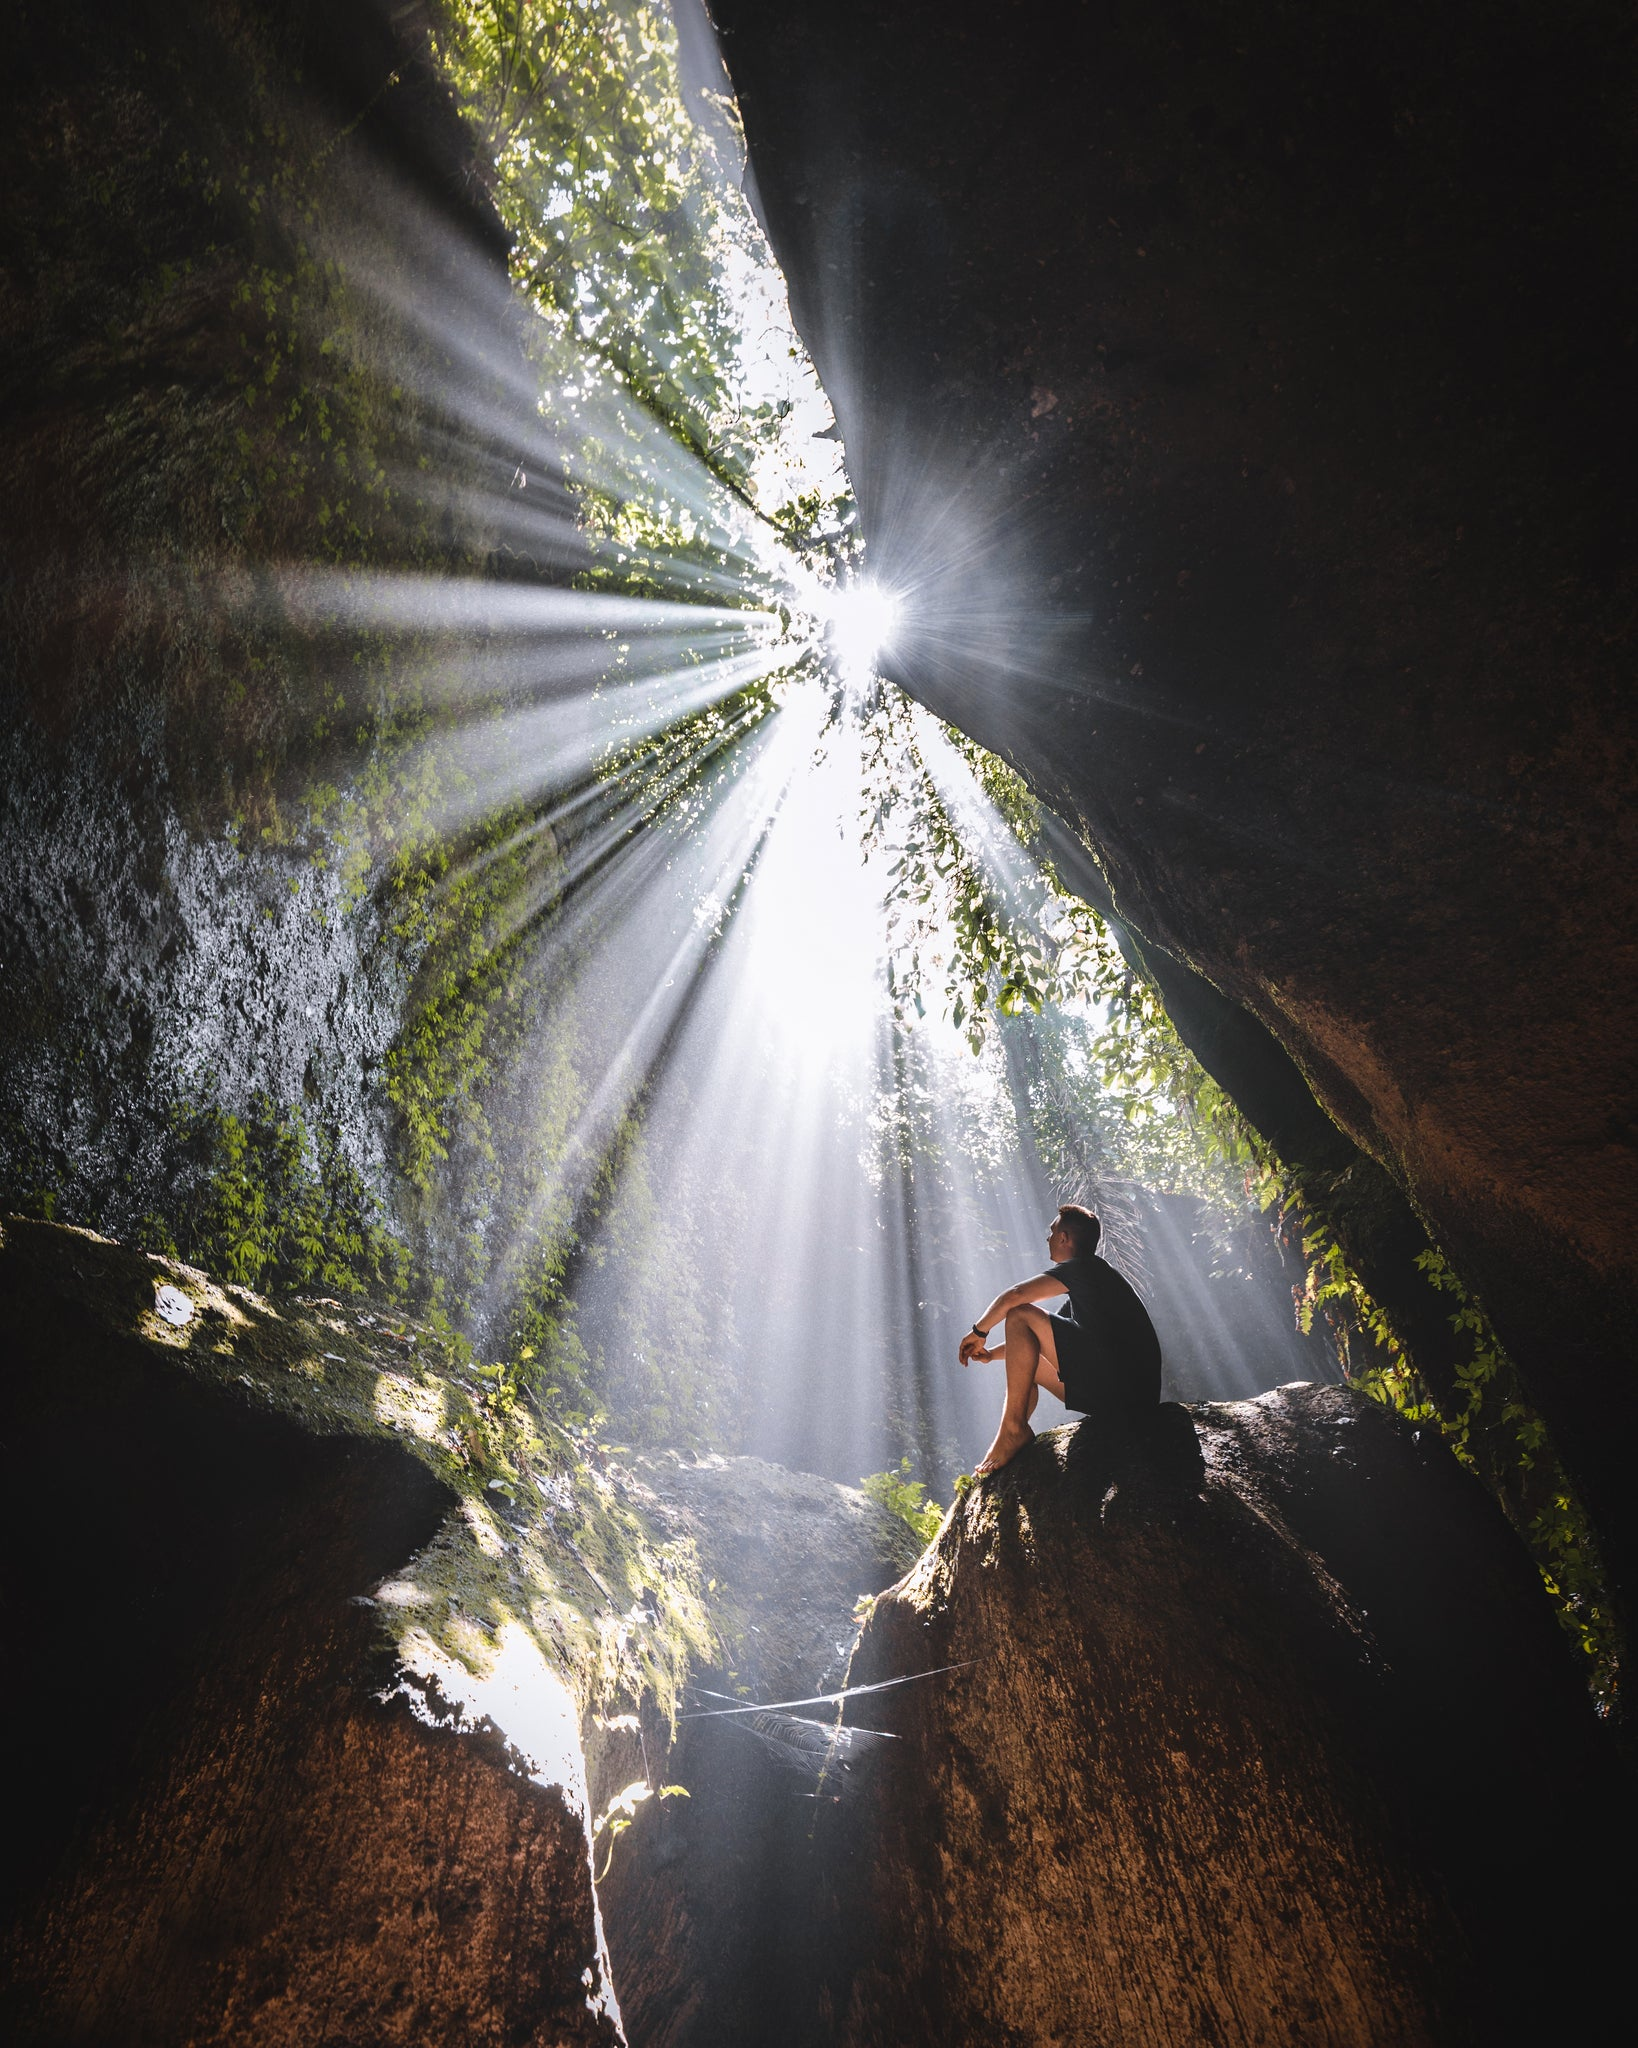 Tukad Cepung Waterfall Light Rays Bali